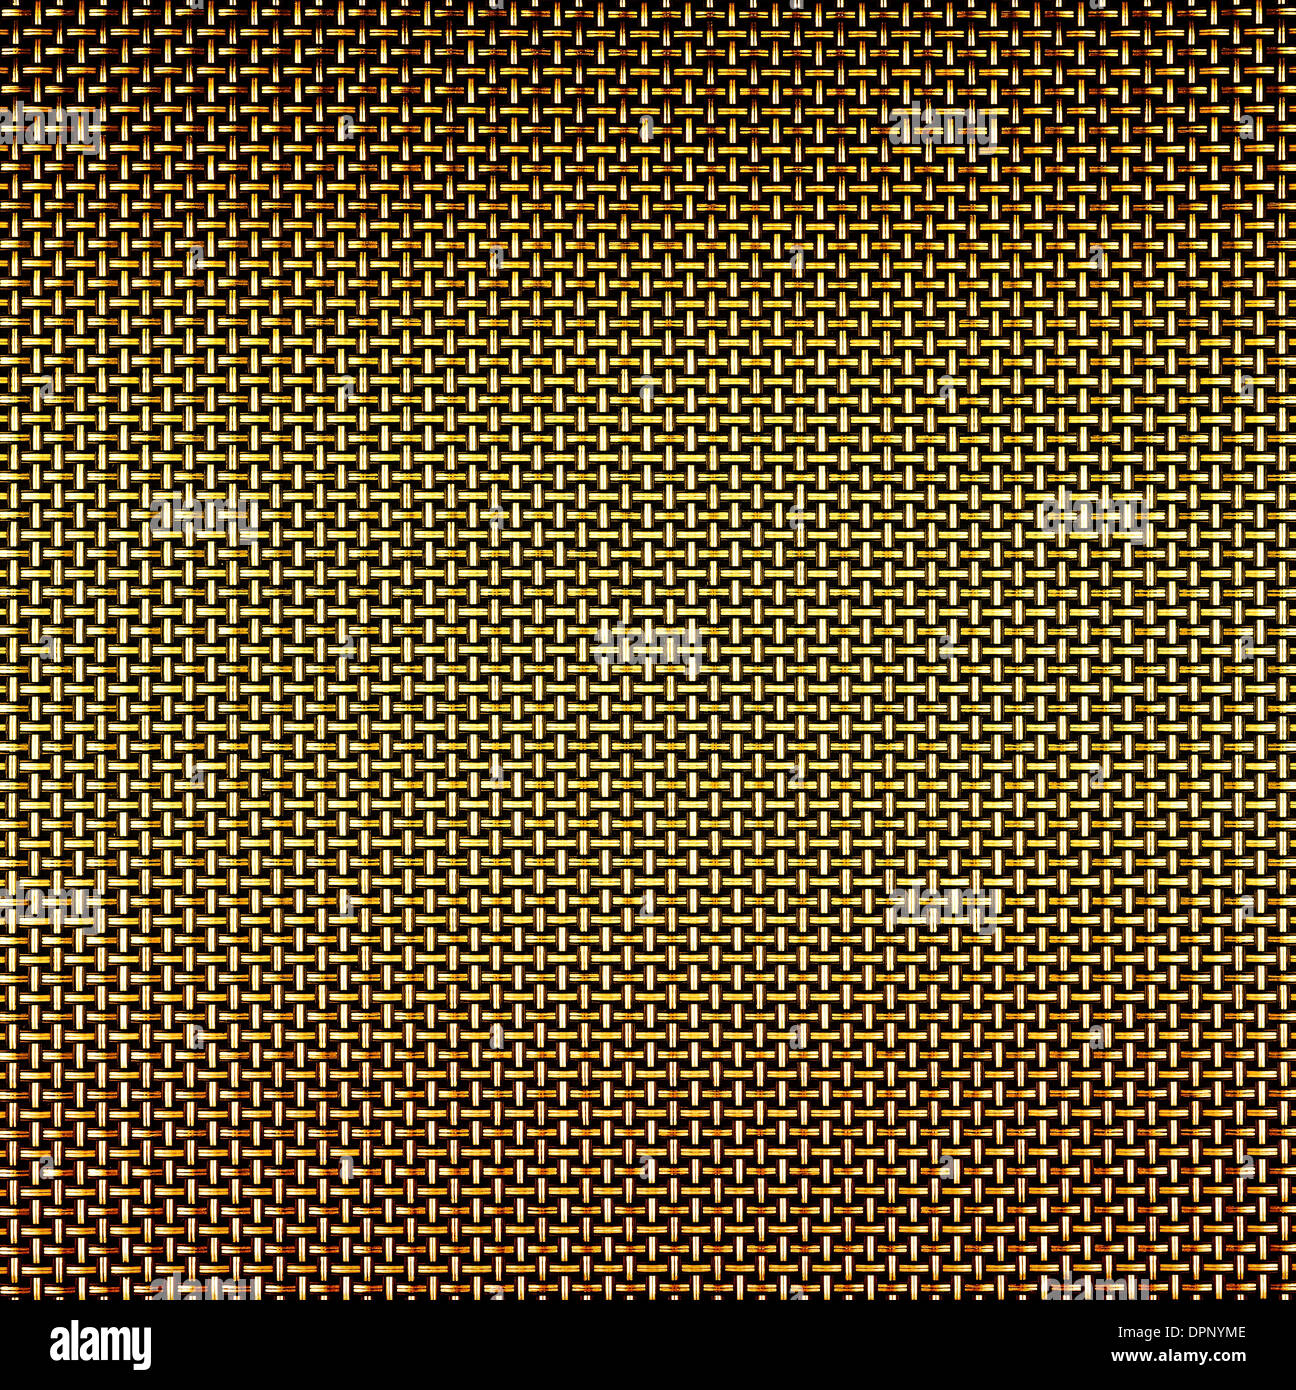 Golden wire grid background - Stock Image